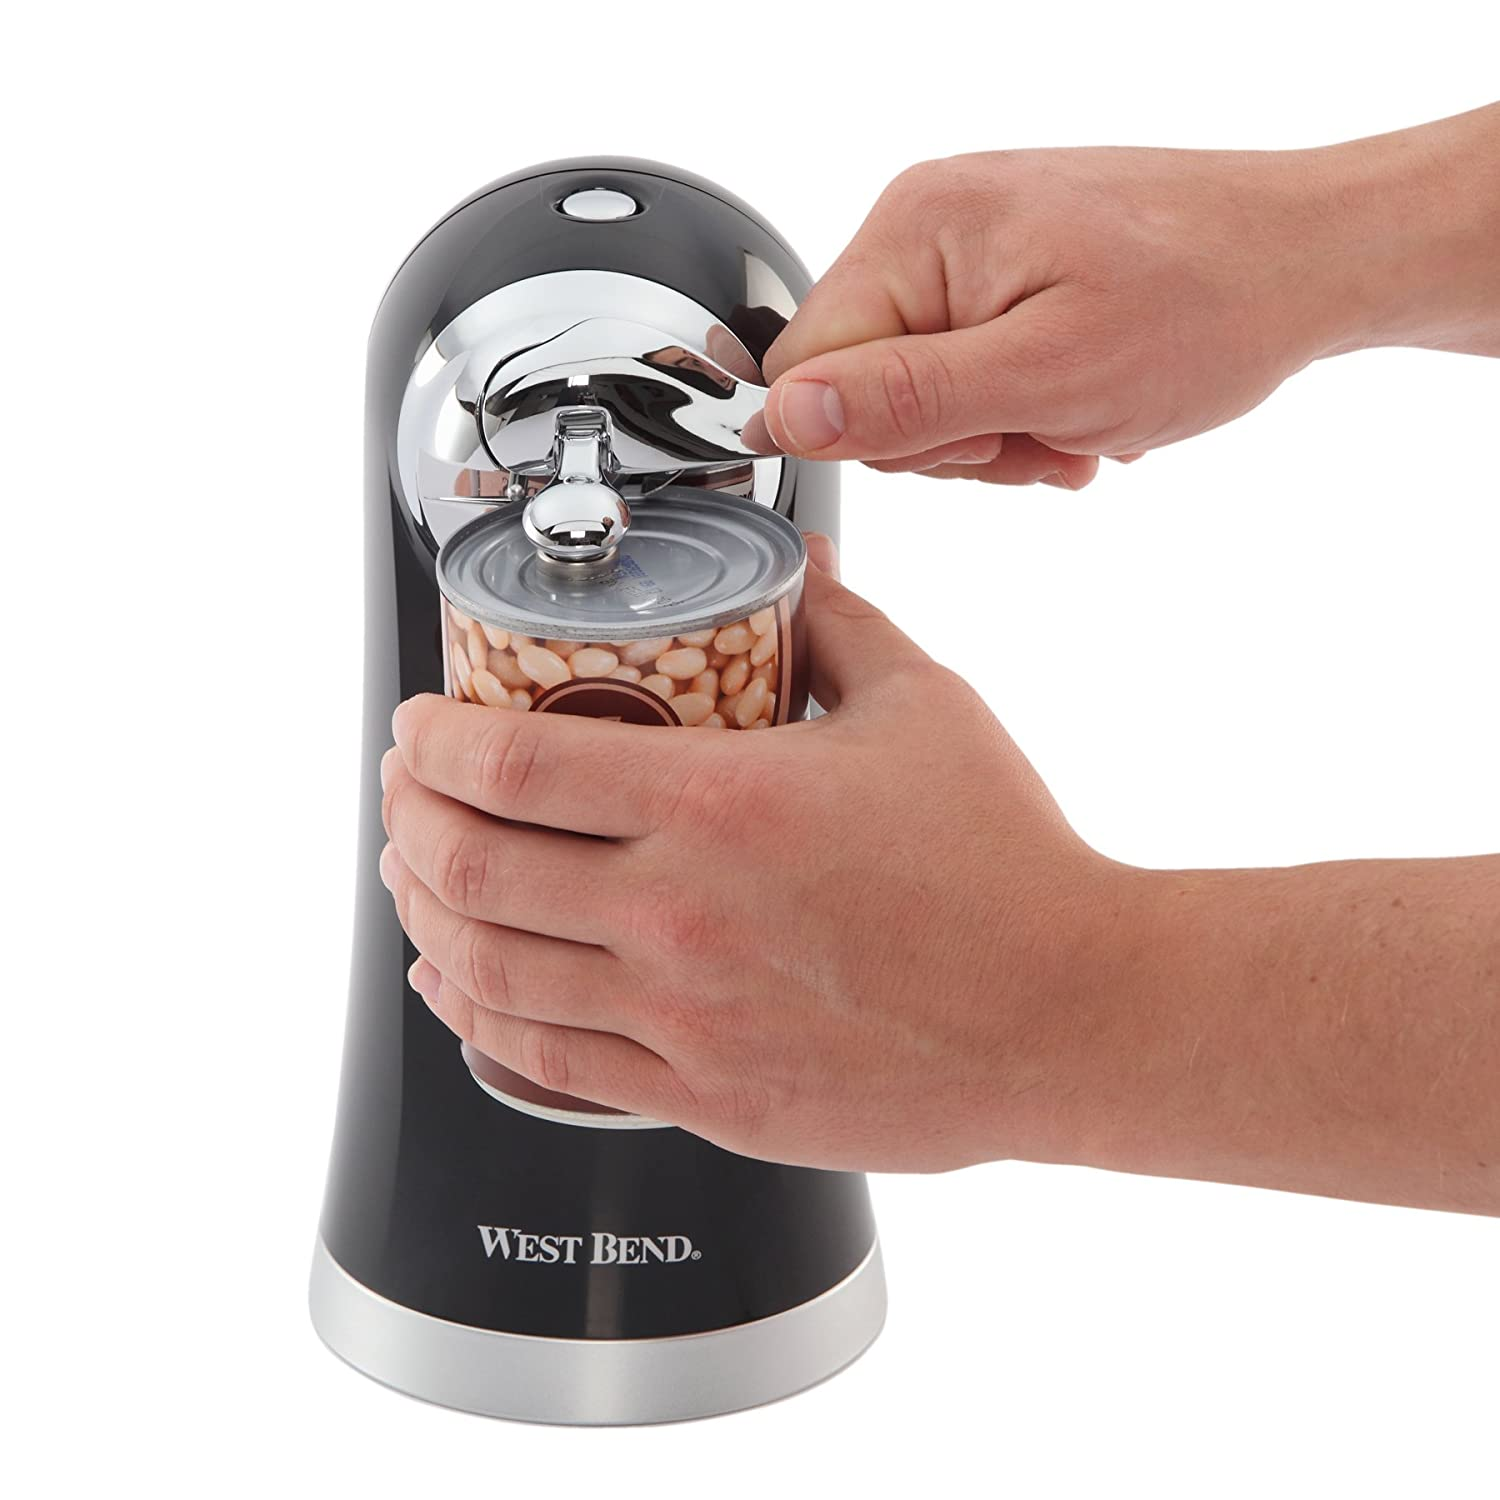 Discontinued by Manufacturer Black West Bend 77202 Electric Can Opener